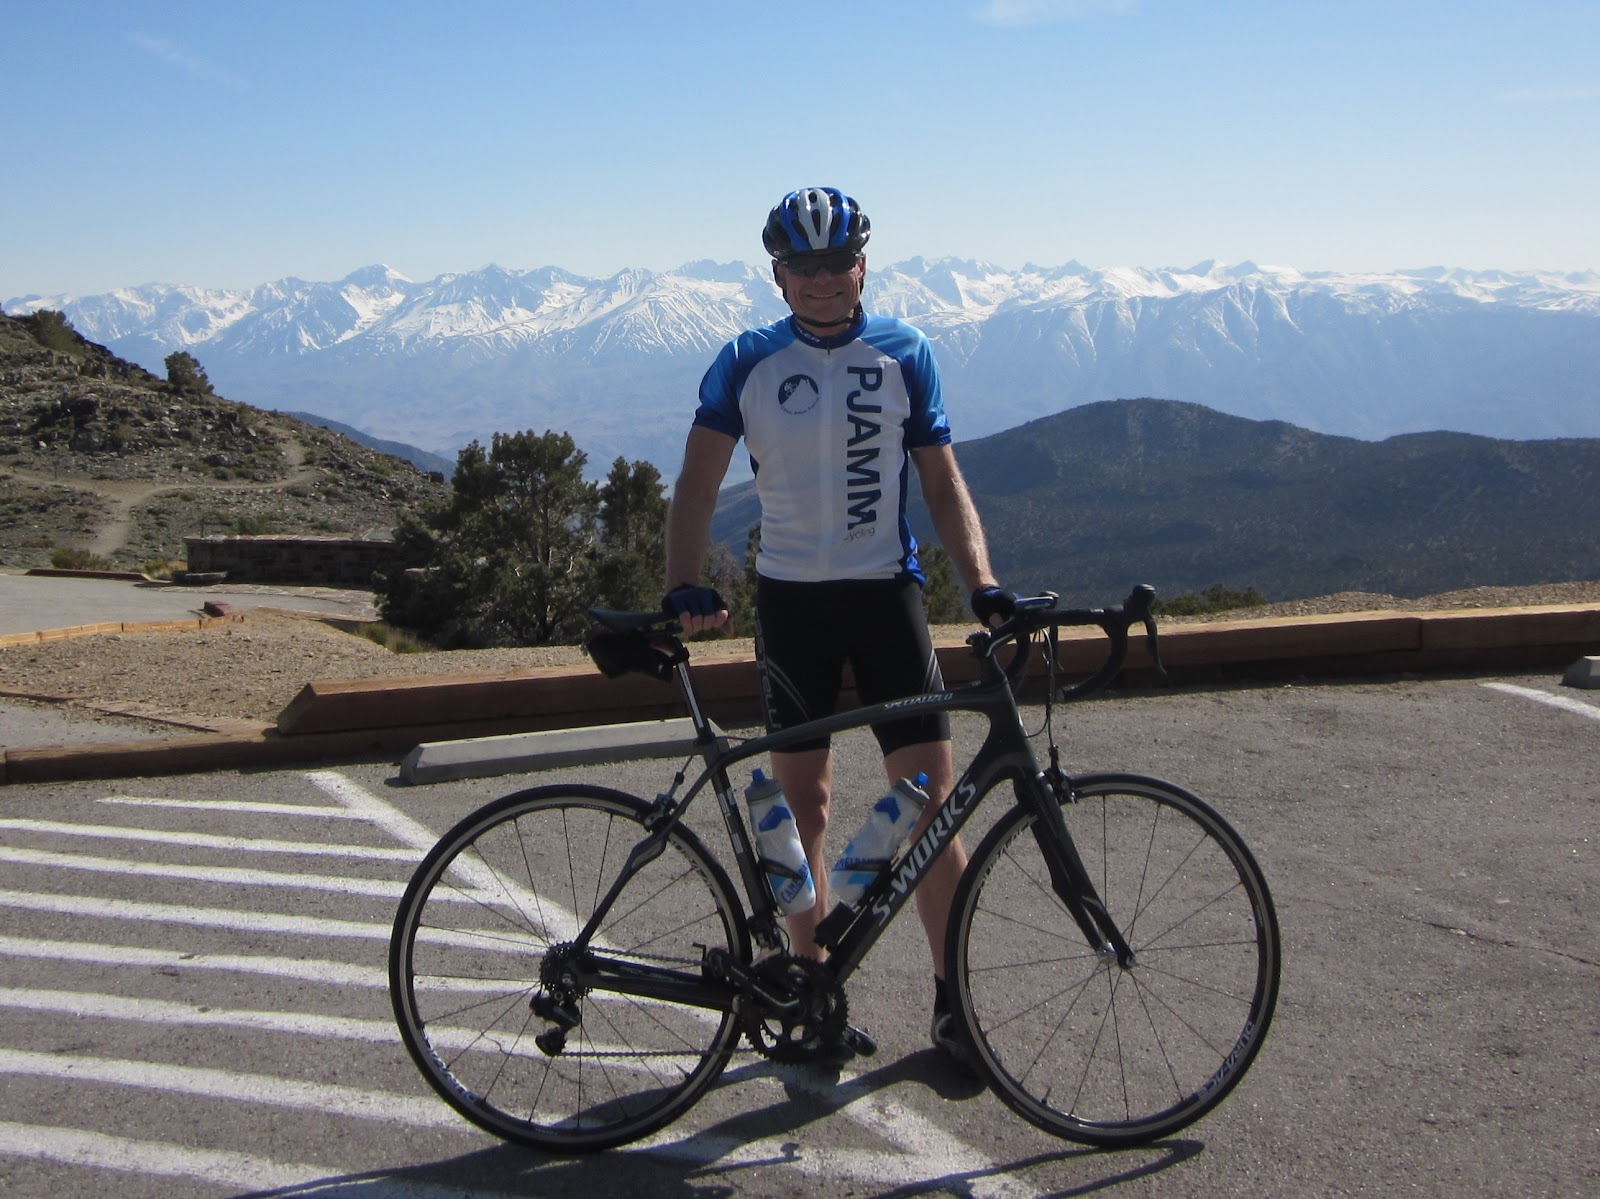 Climb White Mountain Road by bike - John Johnson, cyclists, bicycle, Sierra Nevada mountains in background